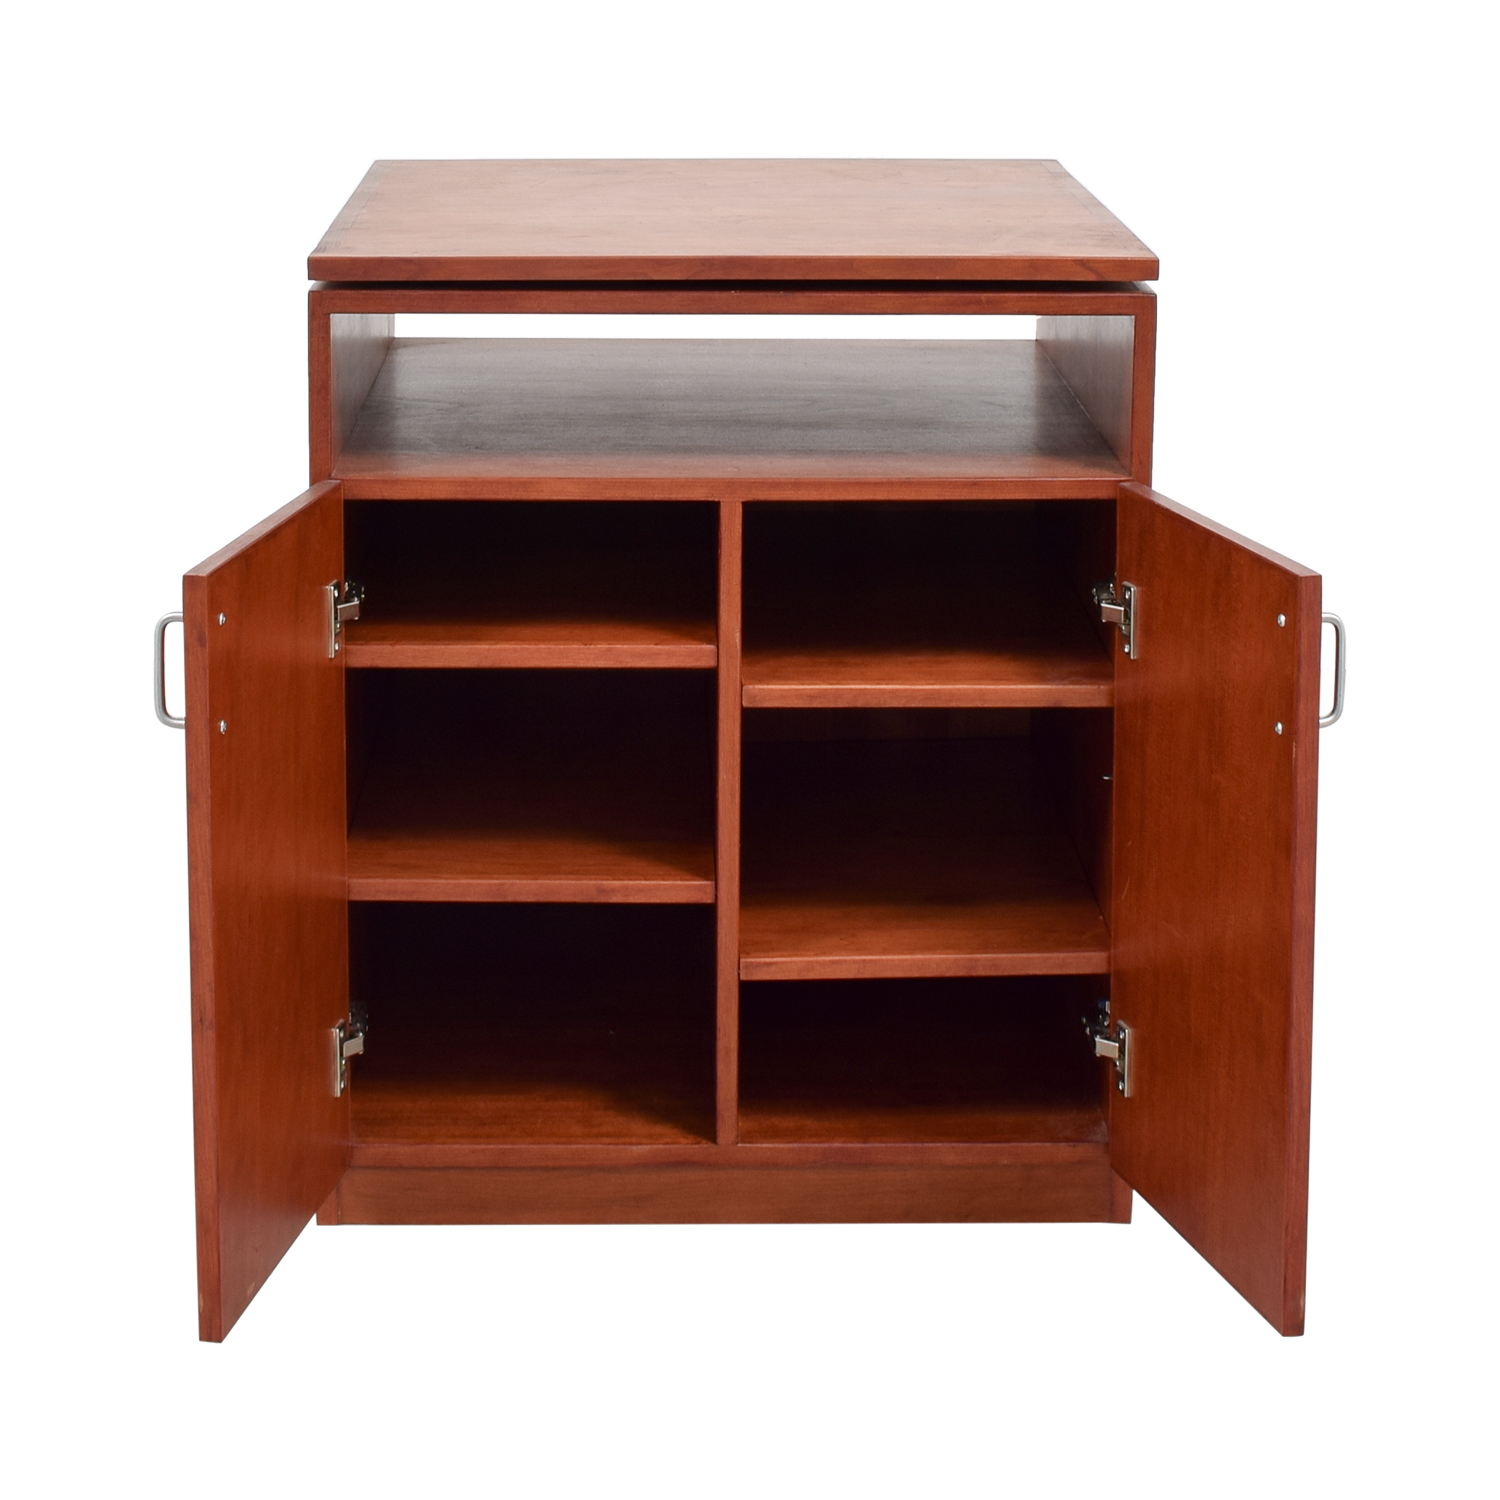 buy 57th Street Bookcase & Cabinet Swivel TV Console 57th Street Bookcase & Cabinet